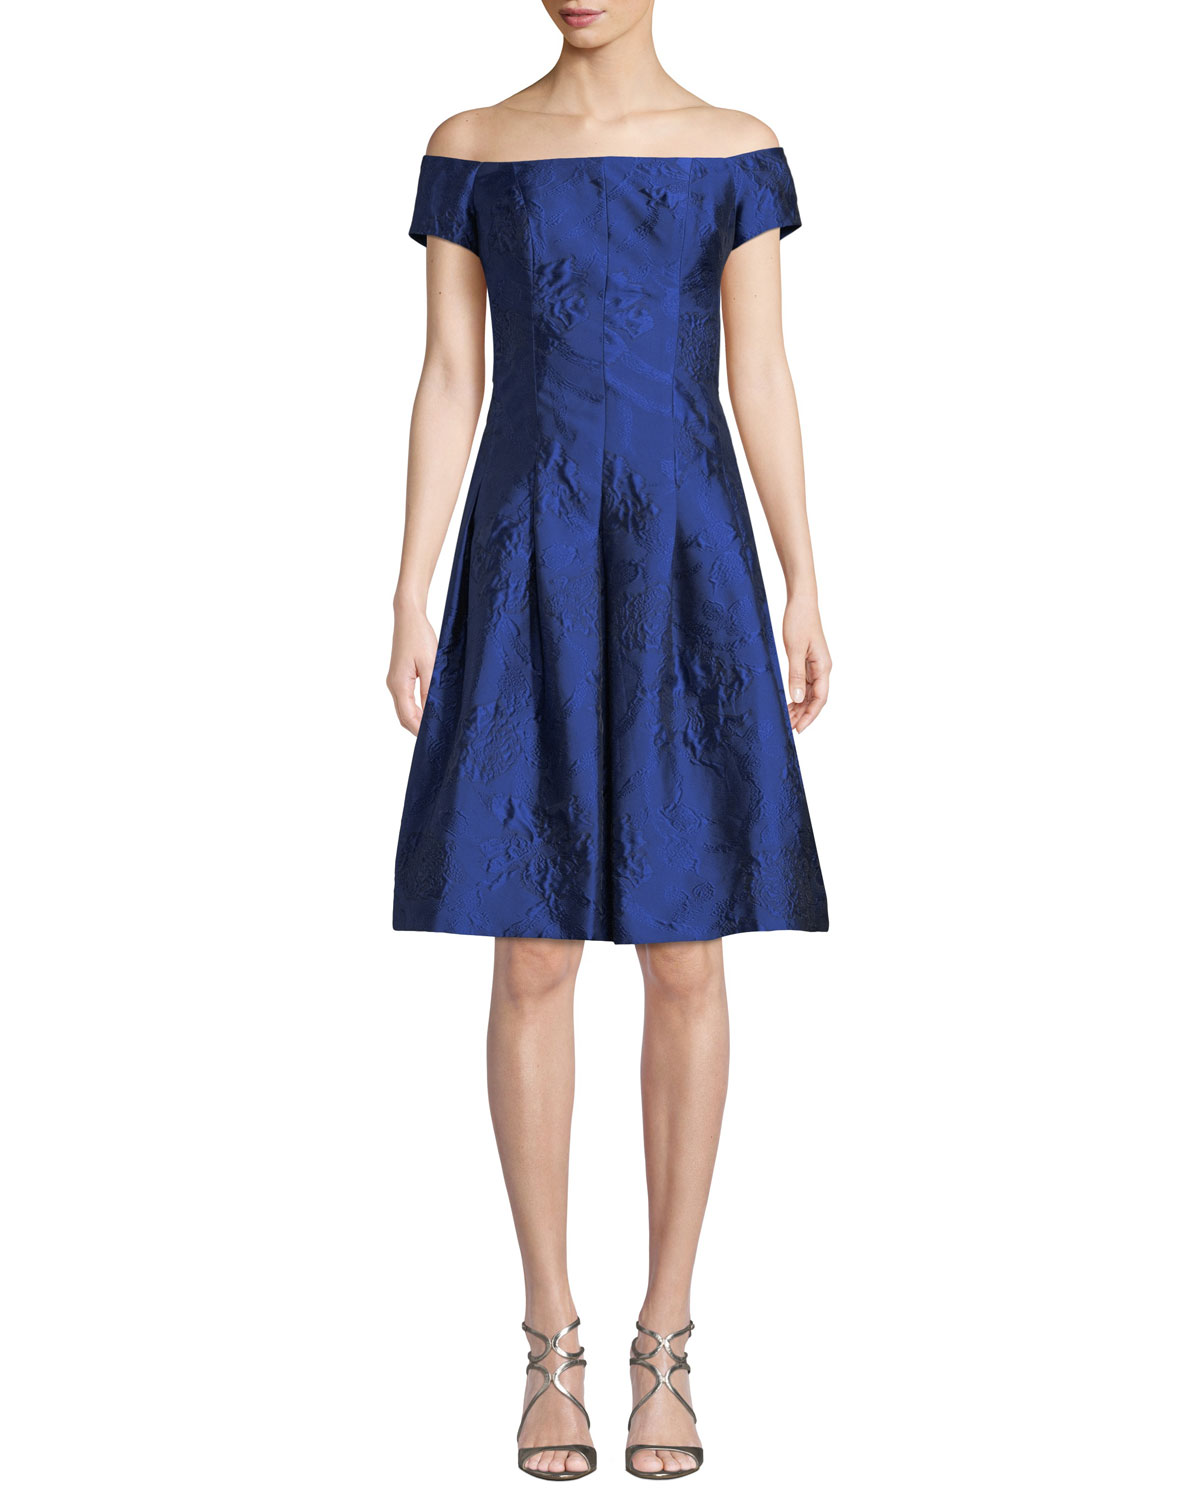 Off-the-Shoulder Cloque Jacquard Cocktail Dress